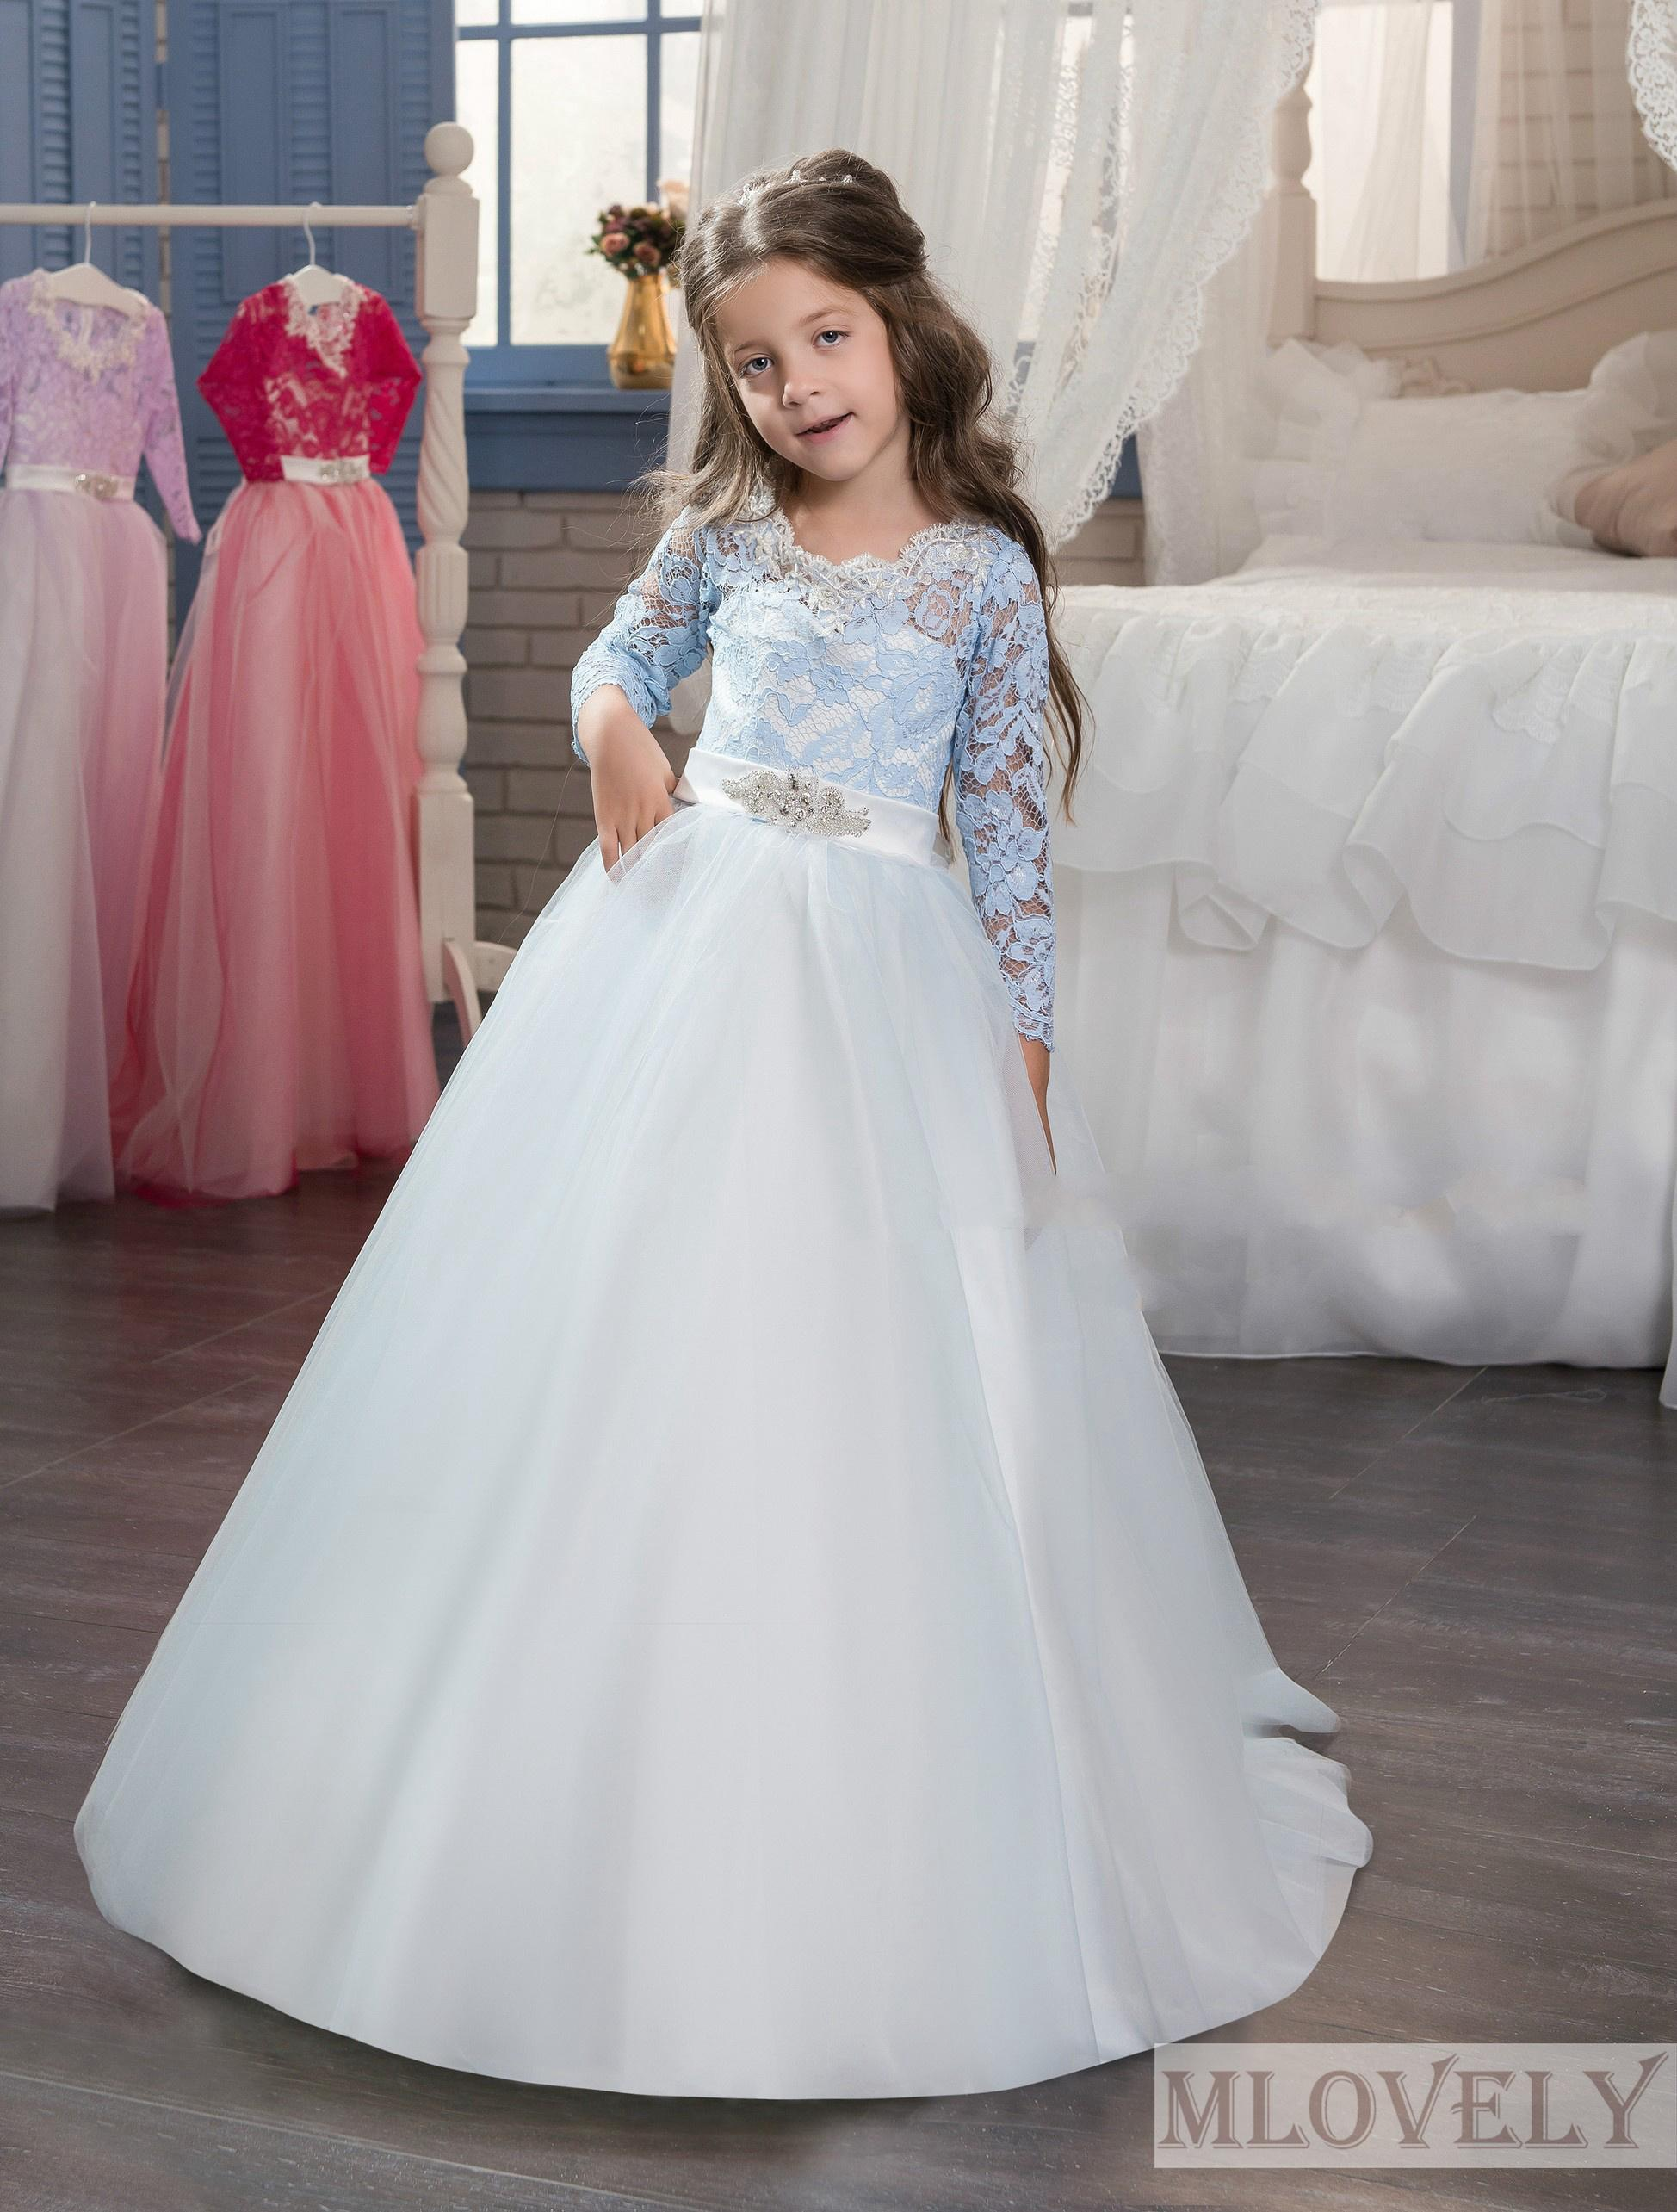 Lace Sleeve Gorgeous Ball Gown Blue Kids Girls Formal Dress Pageant for 5 6 7 8 9 10 year old